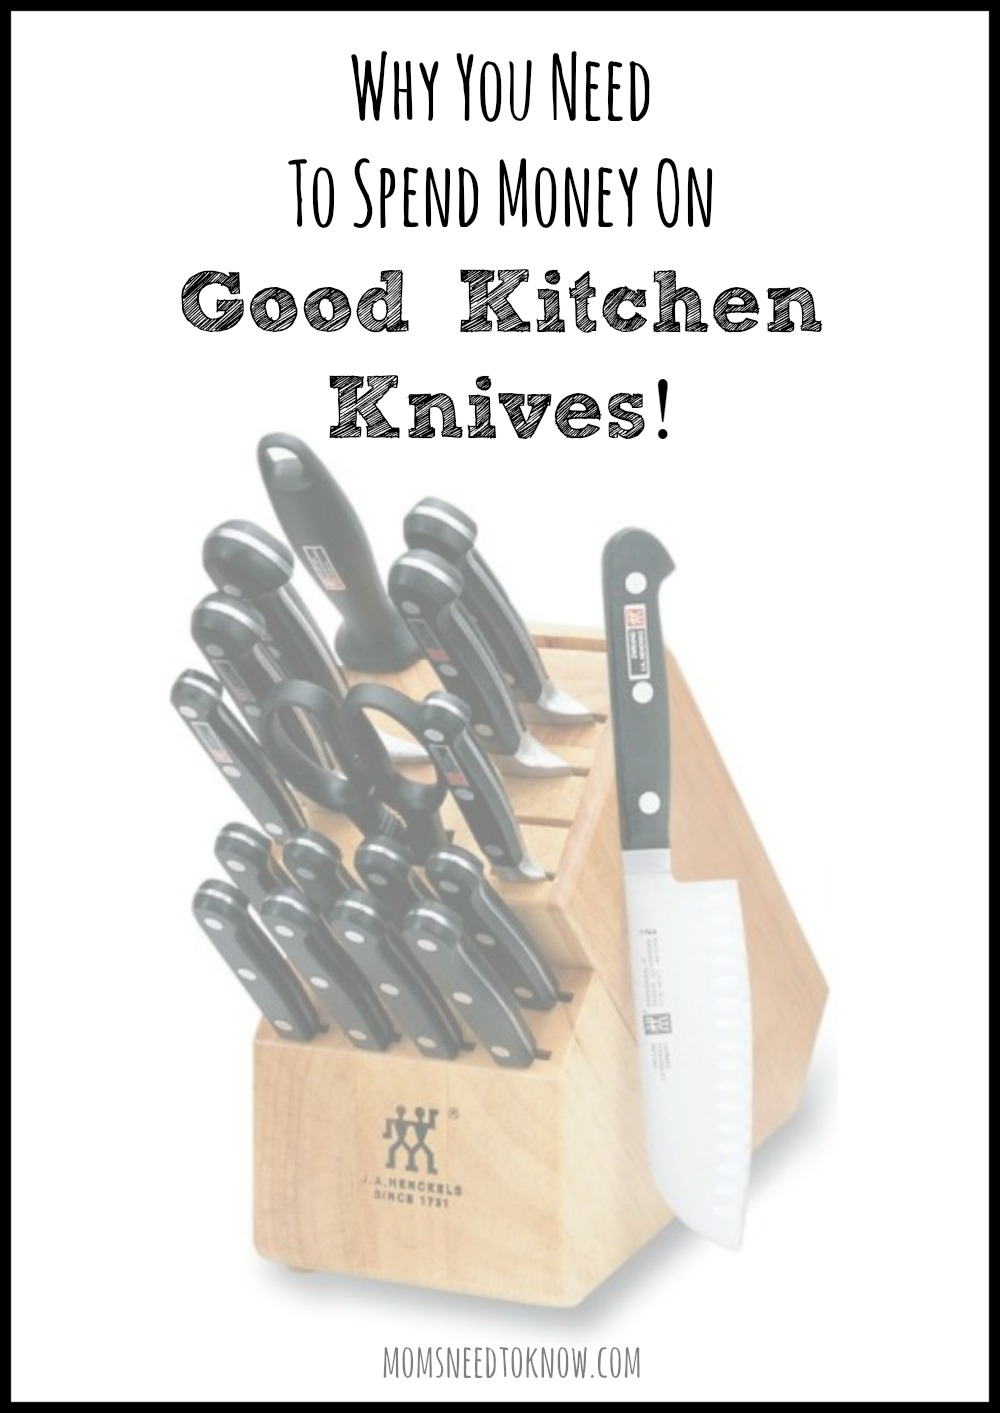 Why You Need To Spend Money on Good Kitchen Knives